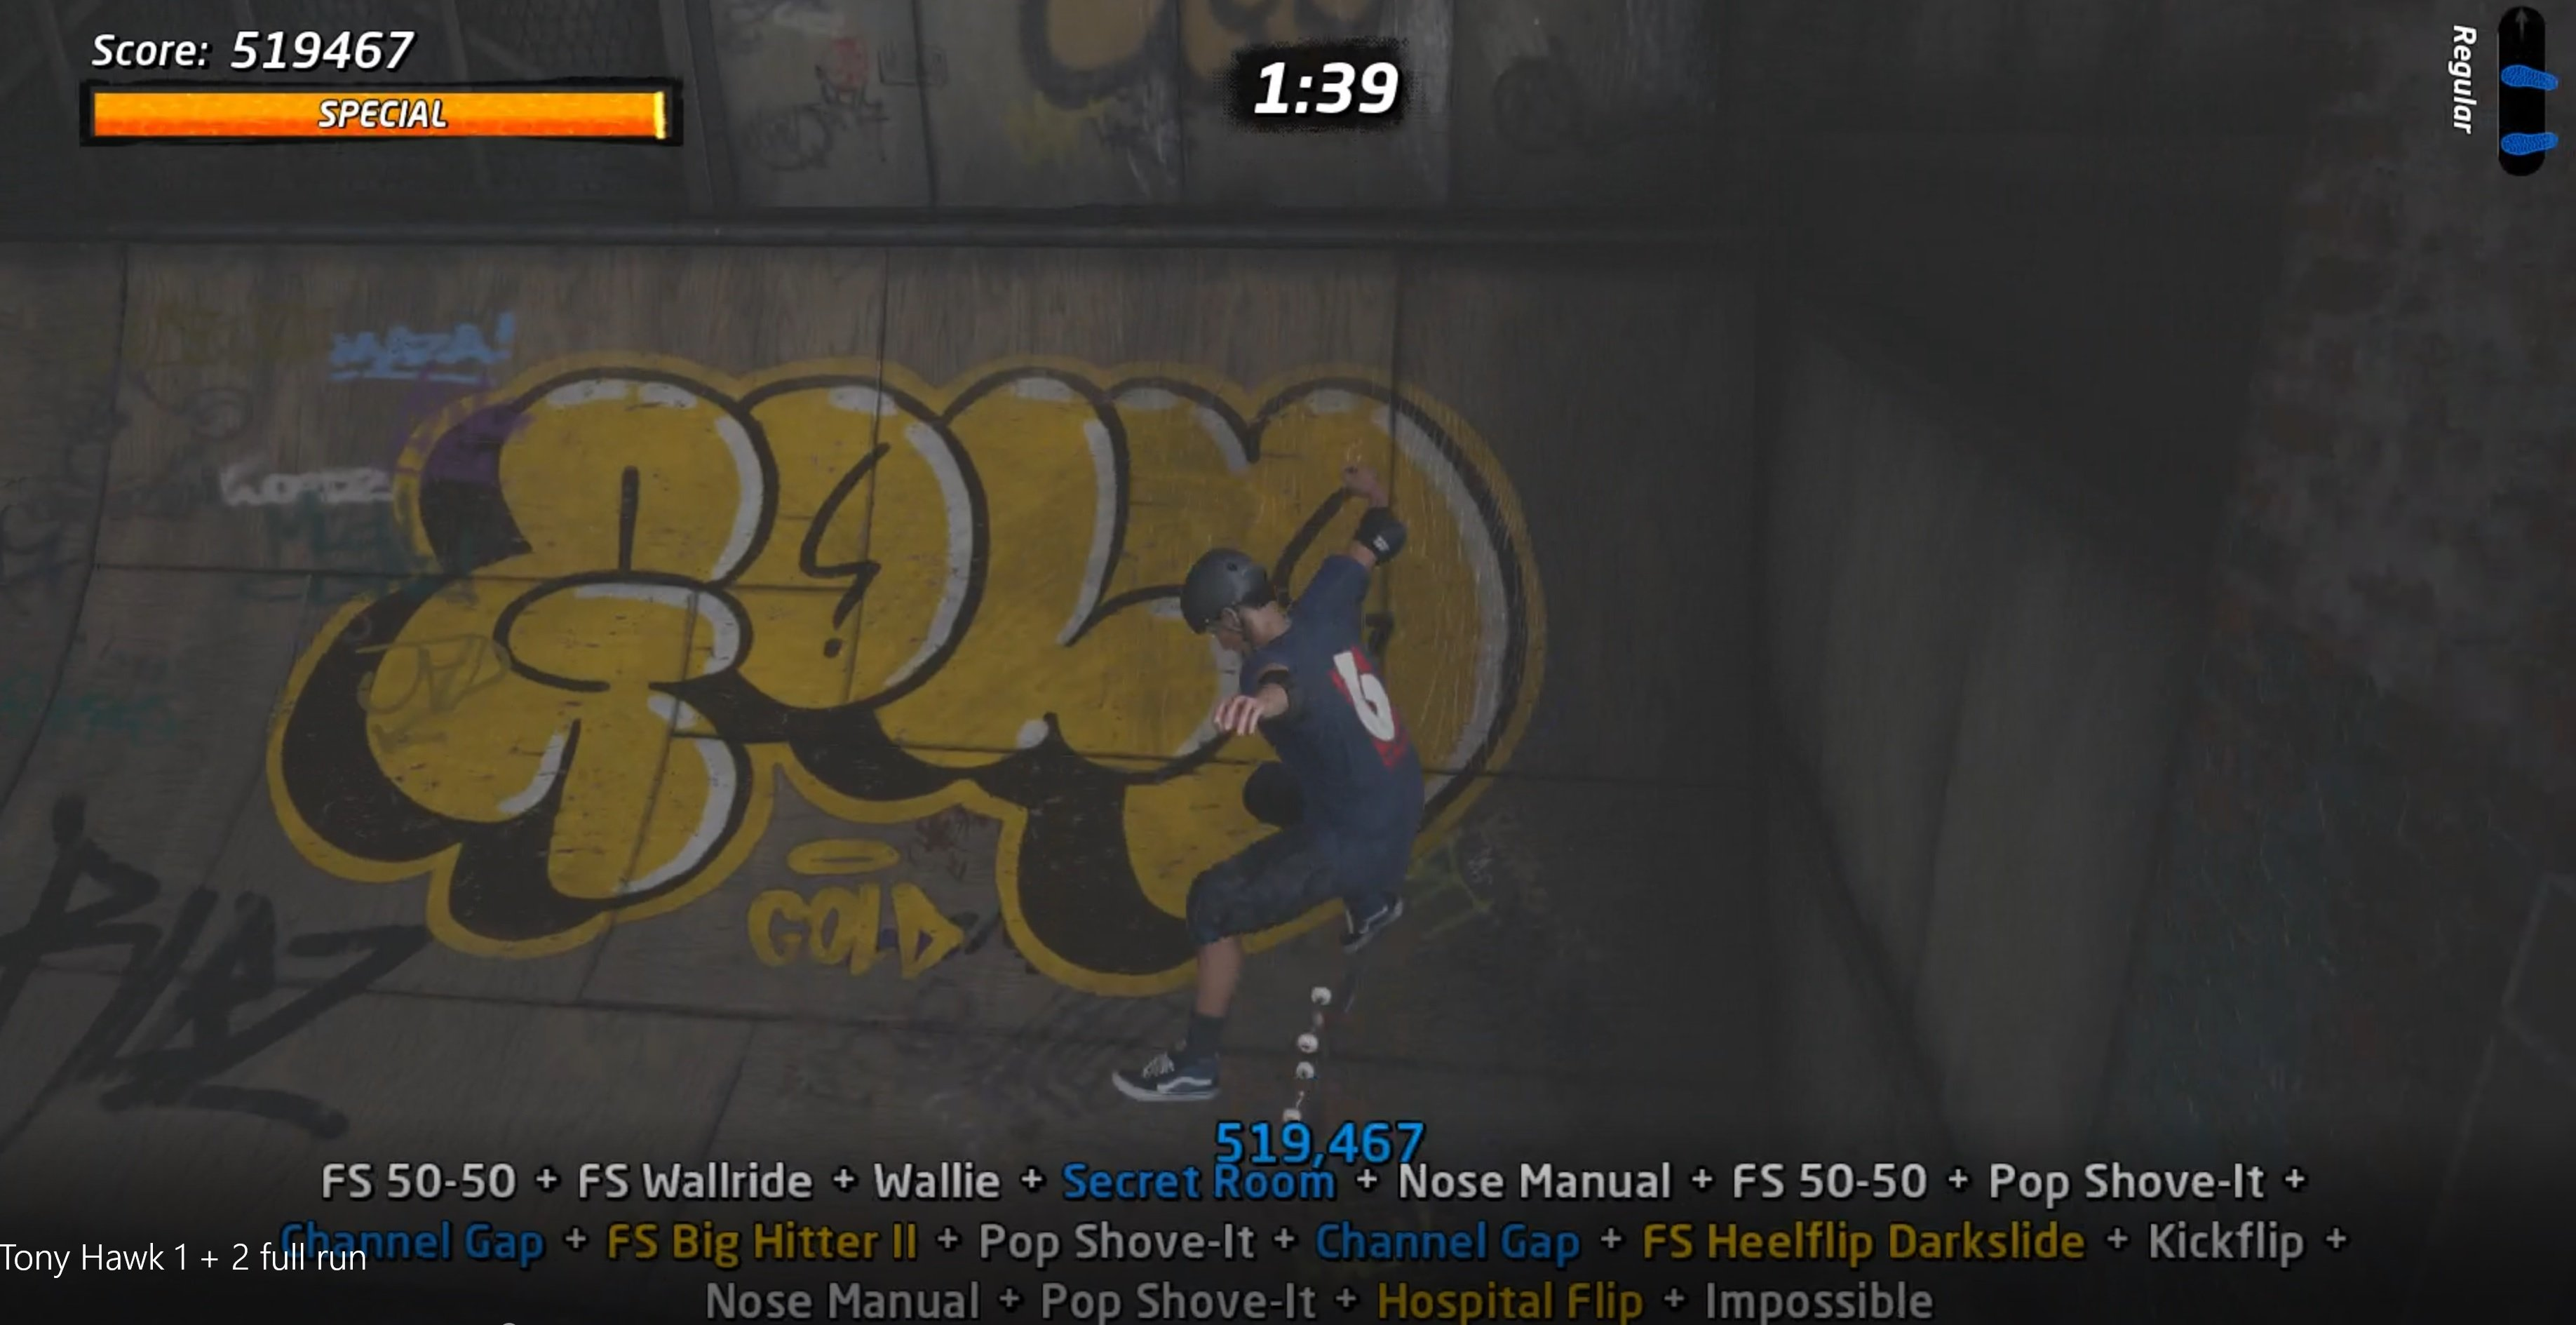 Finally, we can show you footage of a full Tony Hawk's Pro Skater 1 + 2 run screenshot